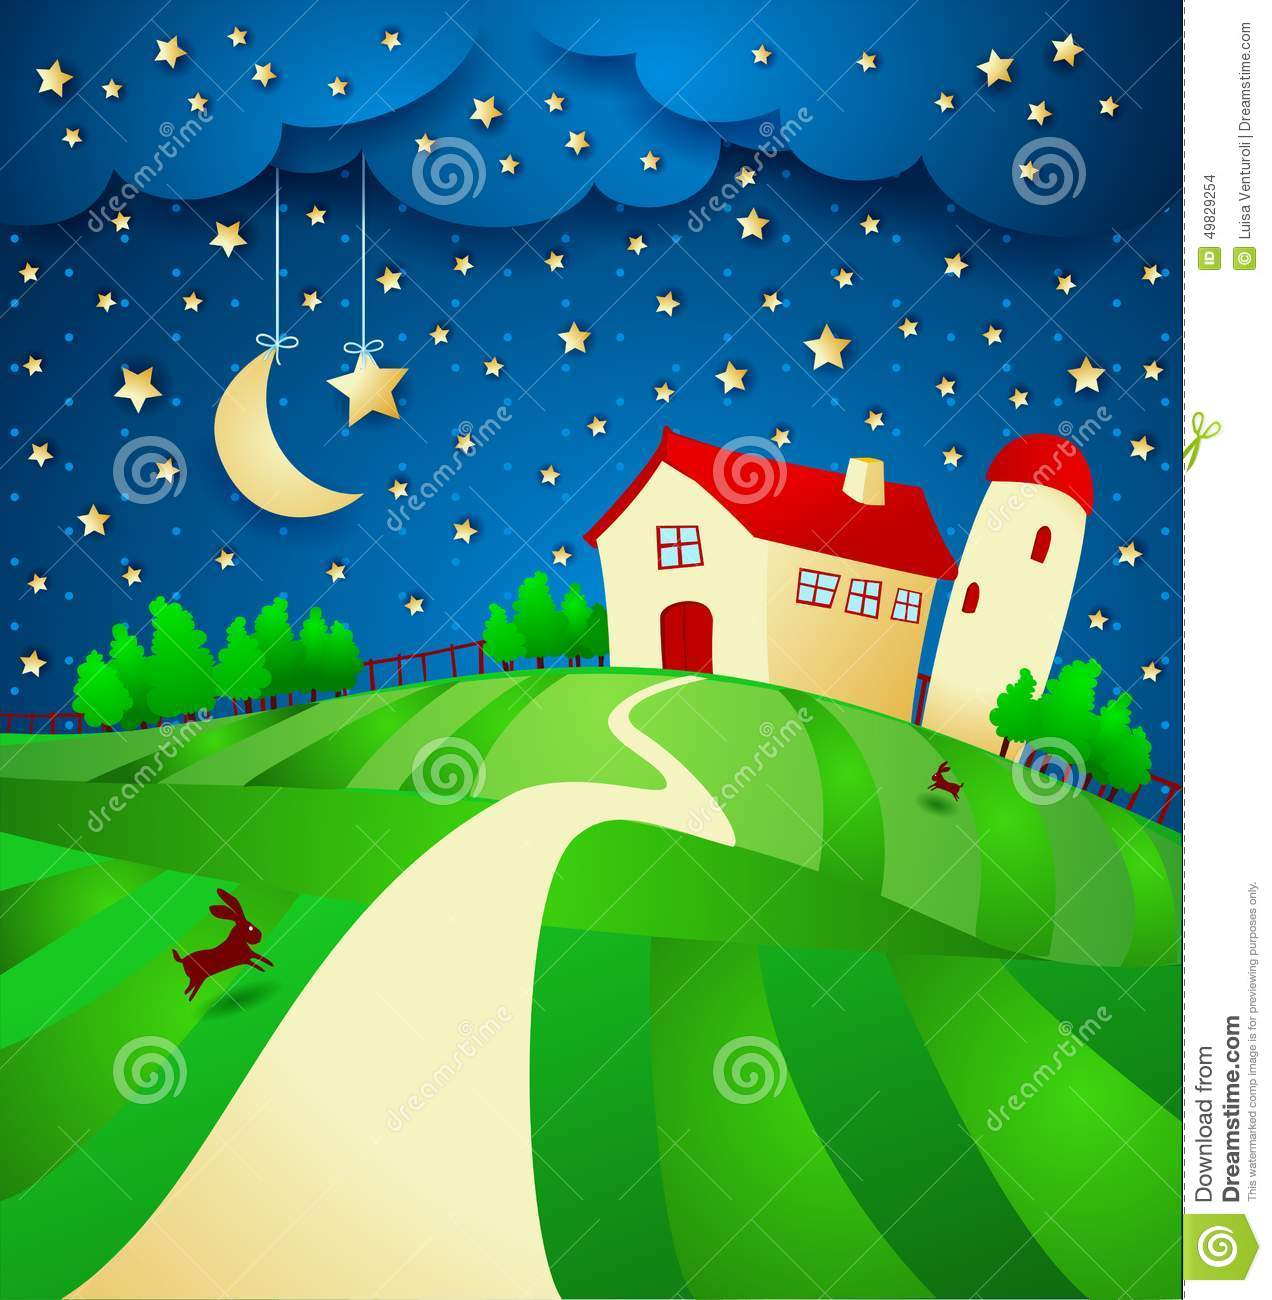 Night Landscape With Farm And Starry Sky Stock Vector.